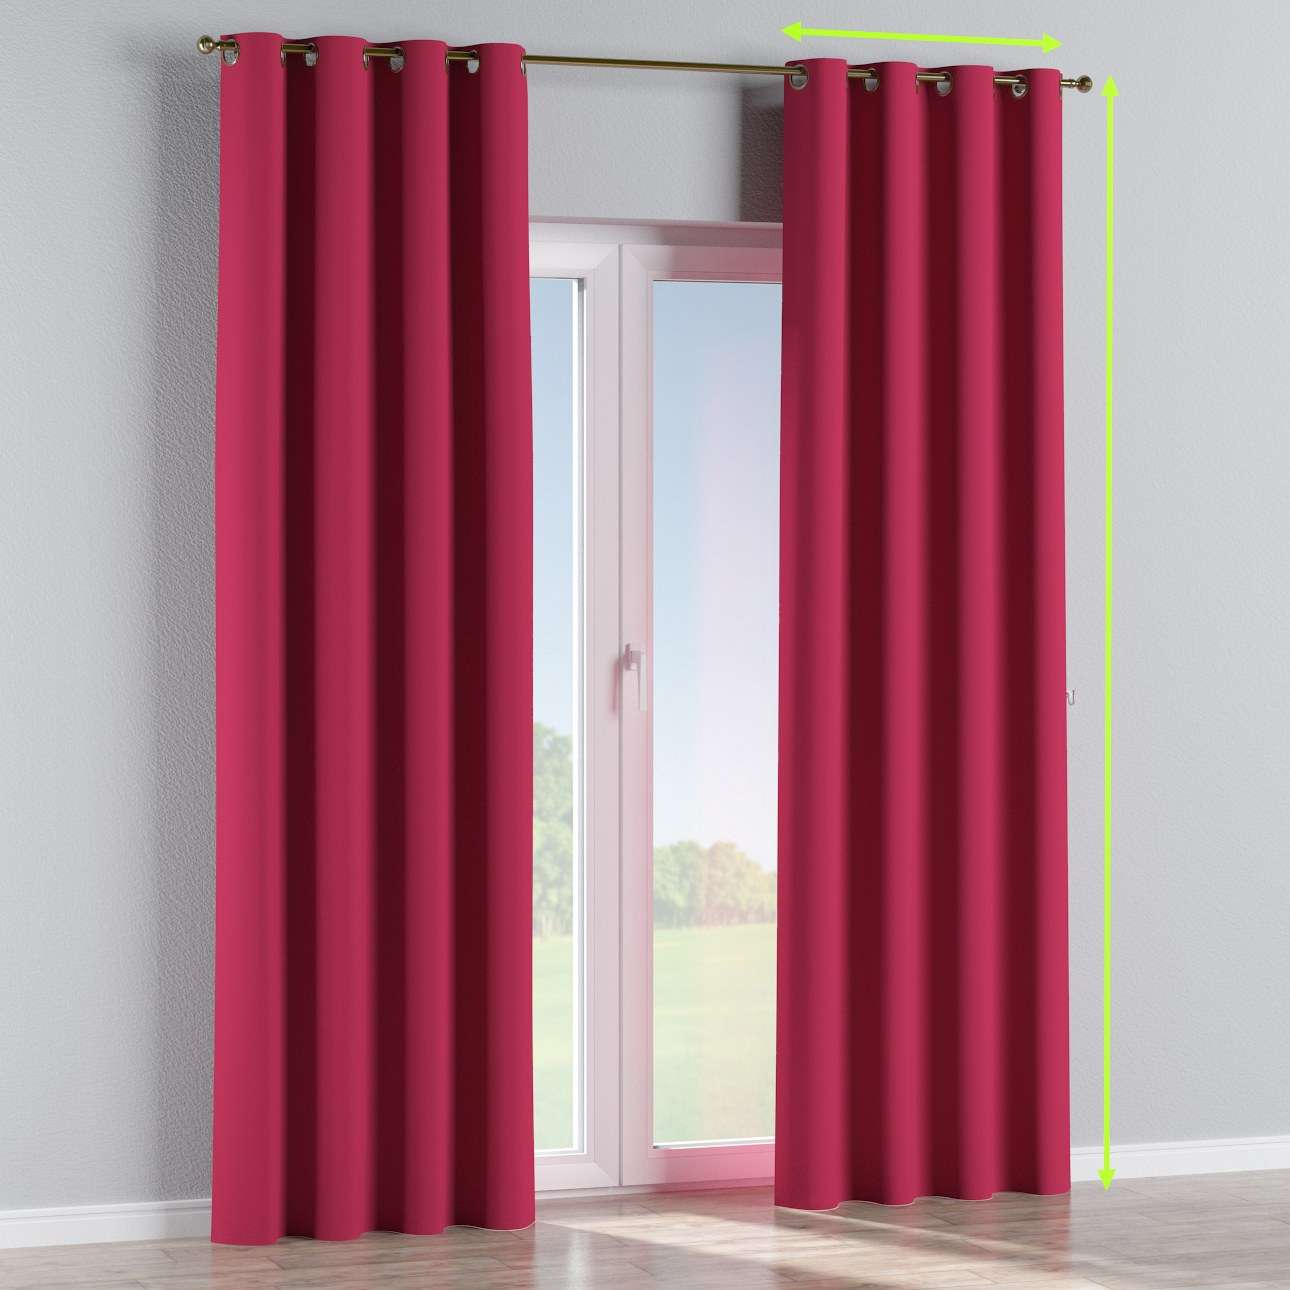 Eyelet curtain in collection Blackout, fabric: 269-51